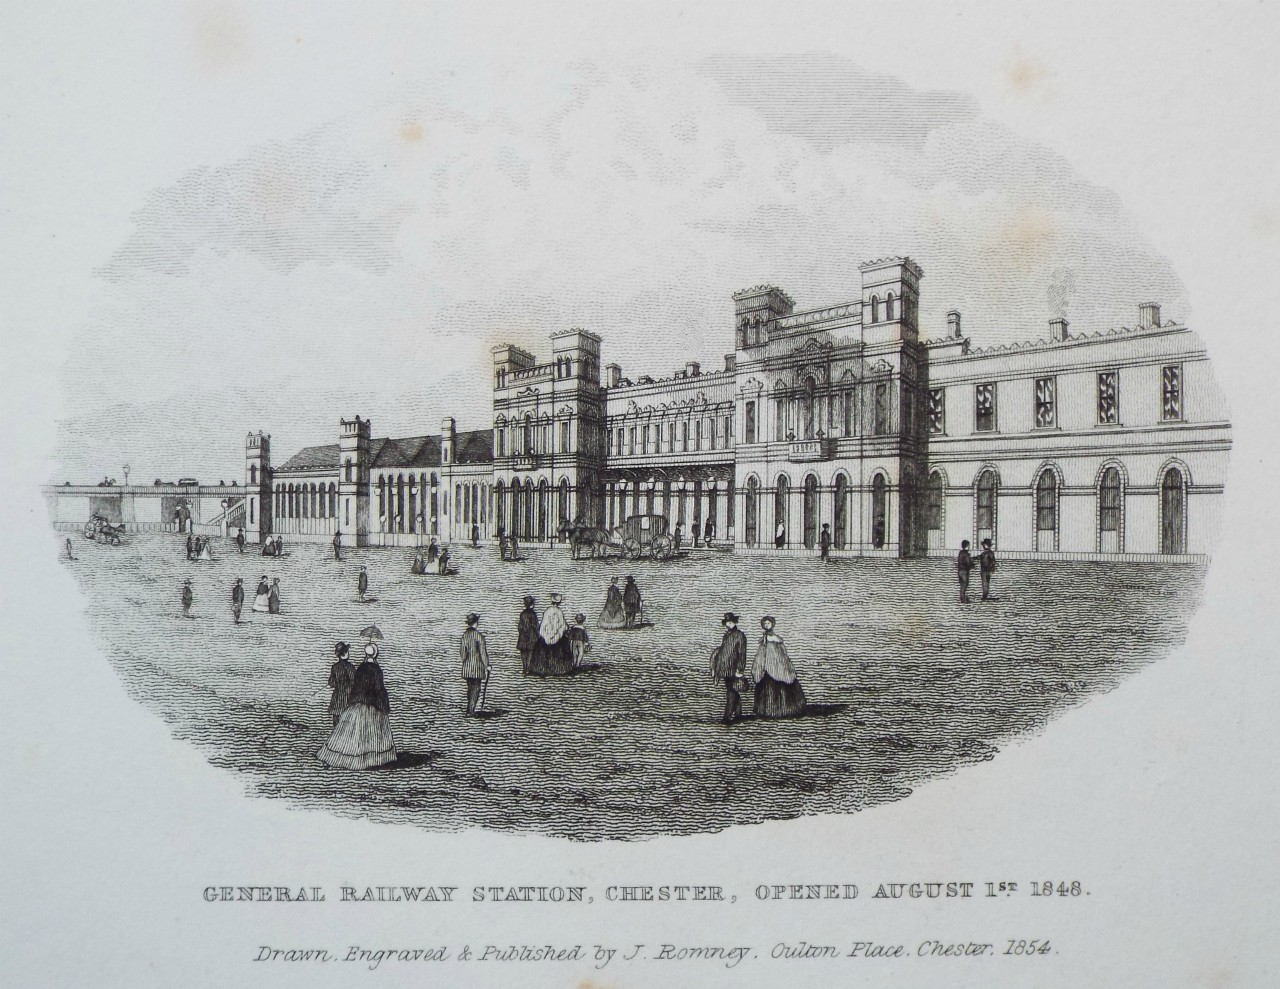 Print - General Railway Station, Chester, Opened August 1st 1848. - Romney